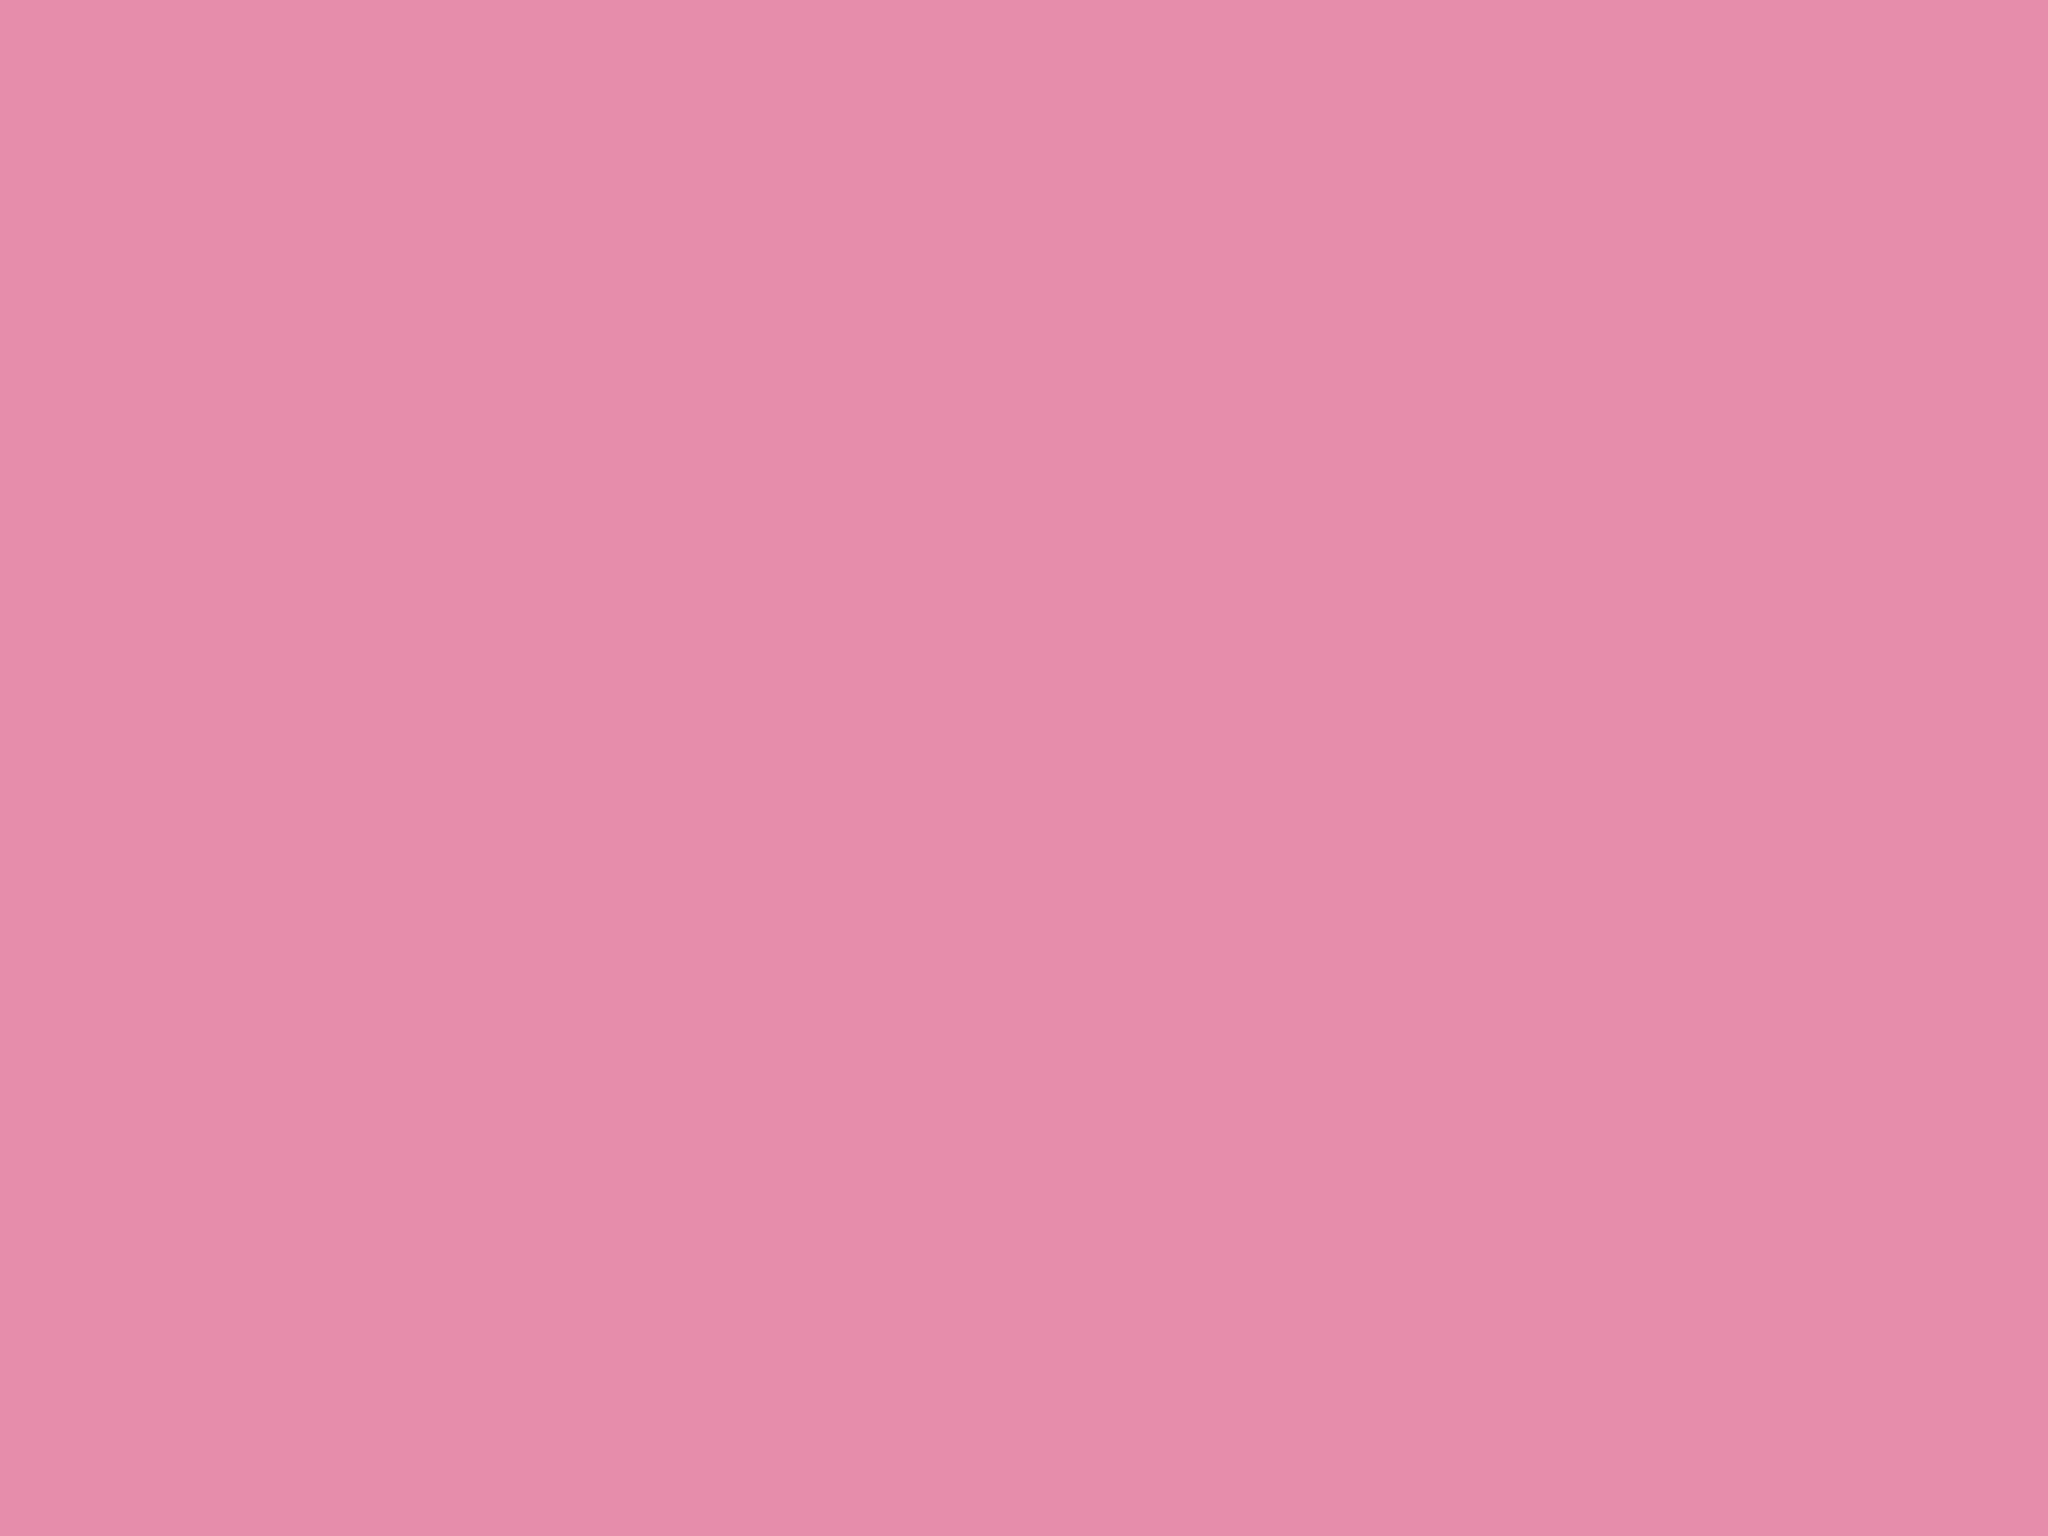 2048x1536 Charm Pink Solid Color Background